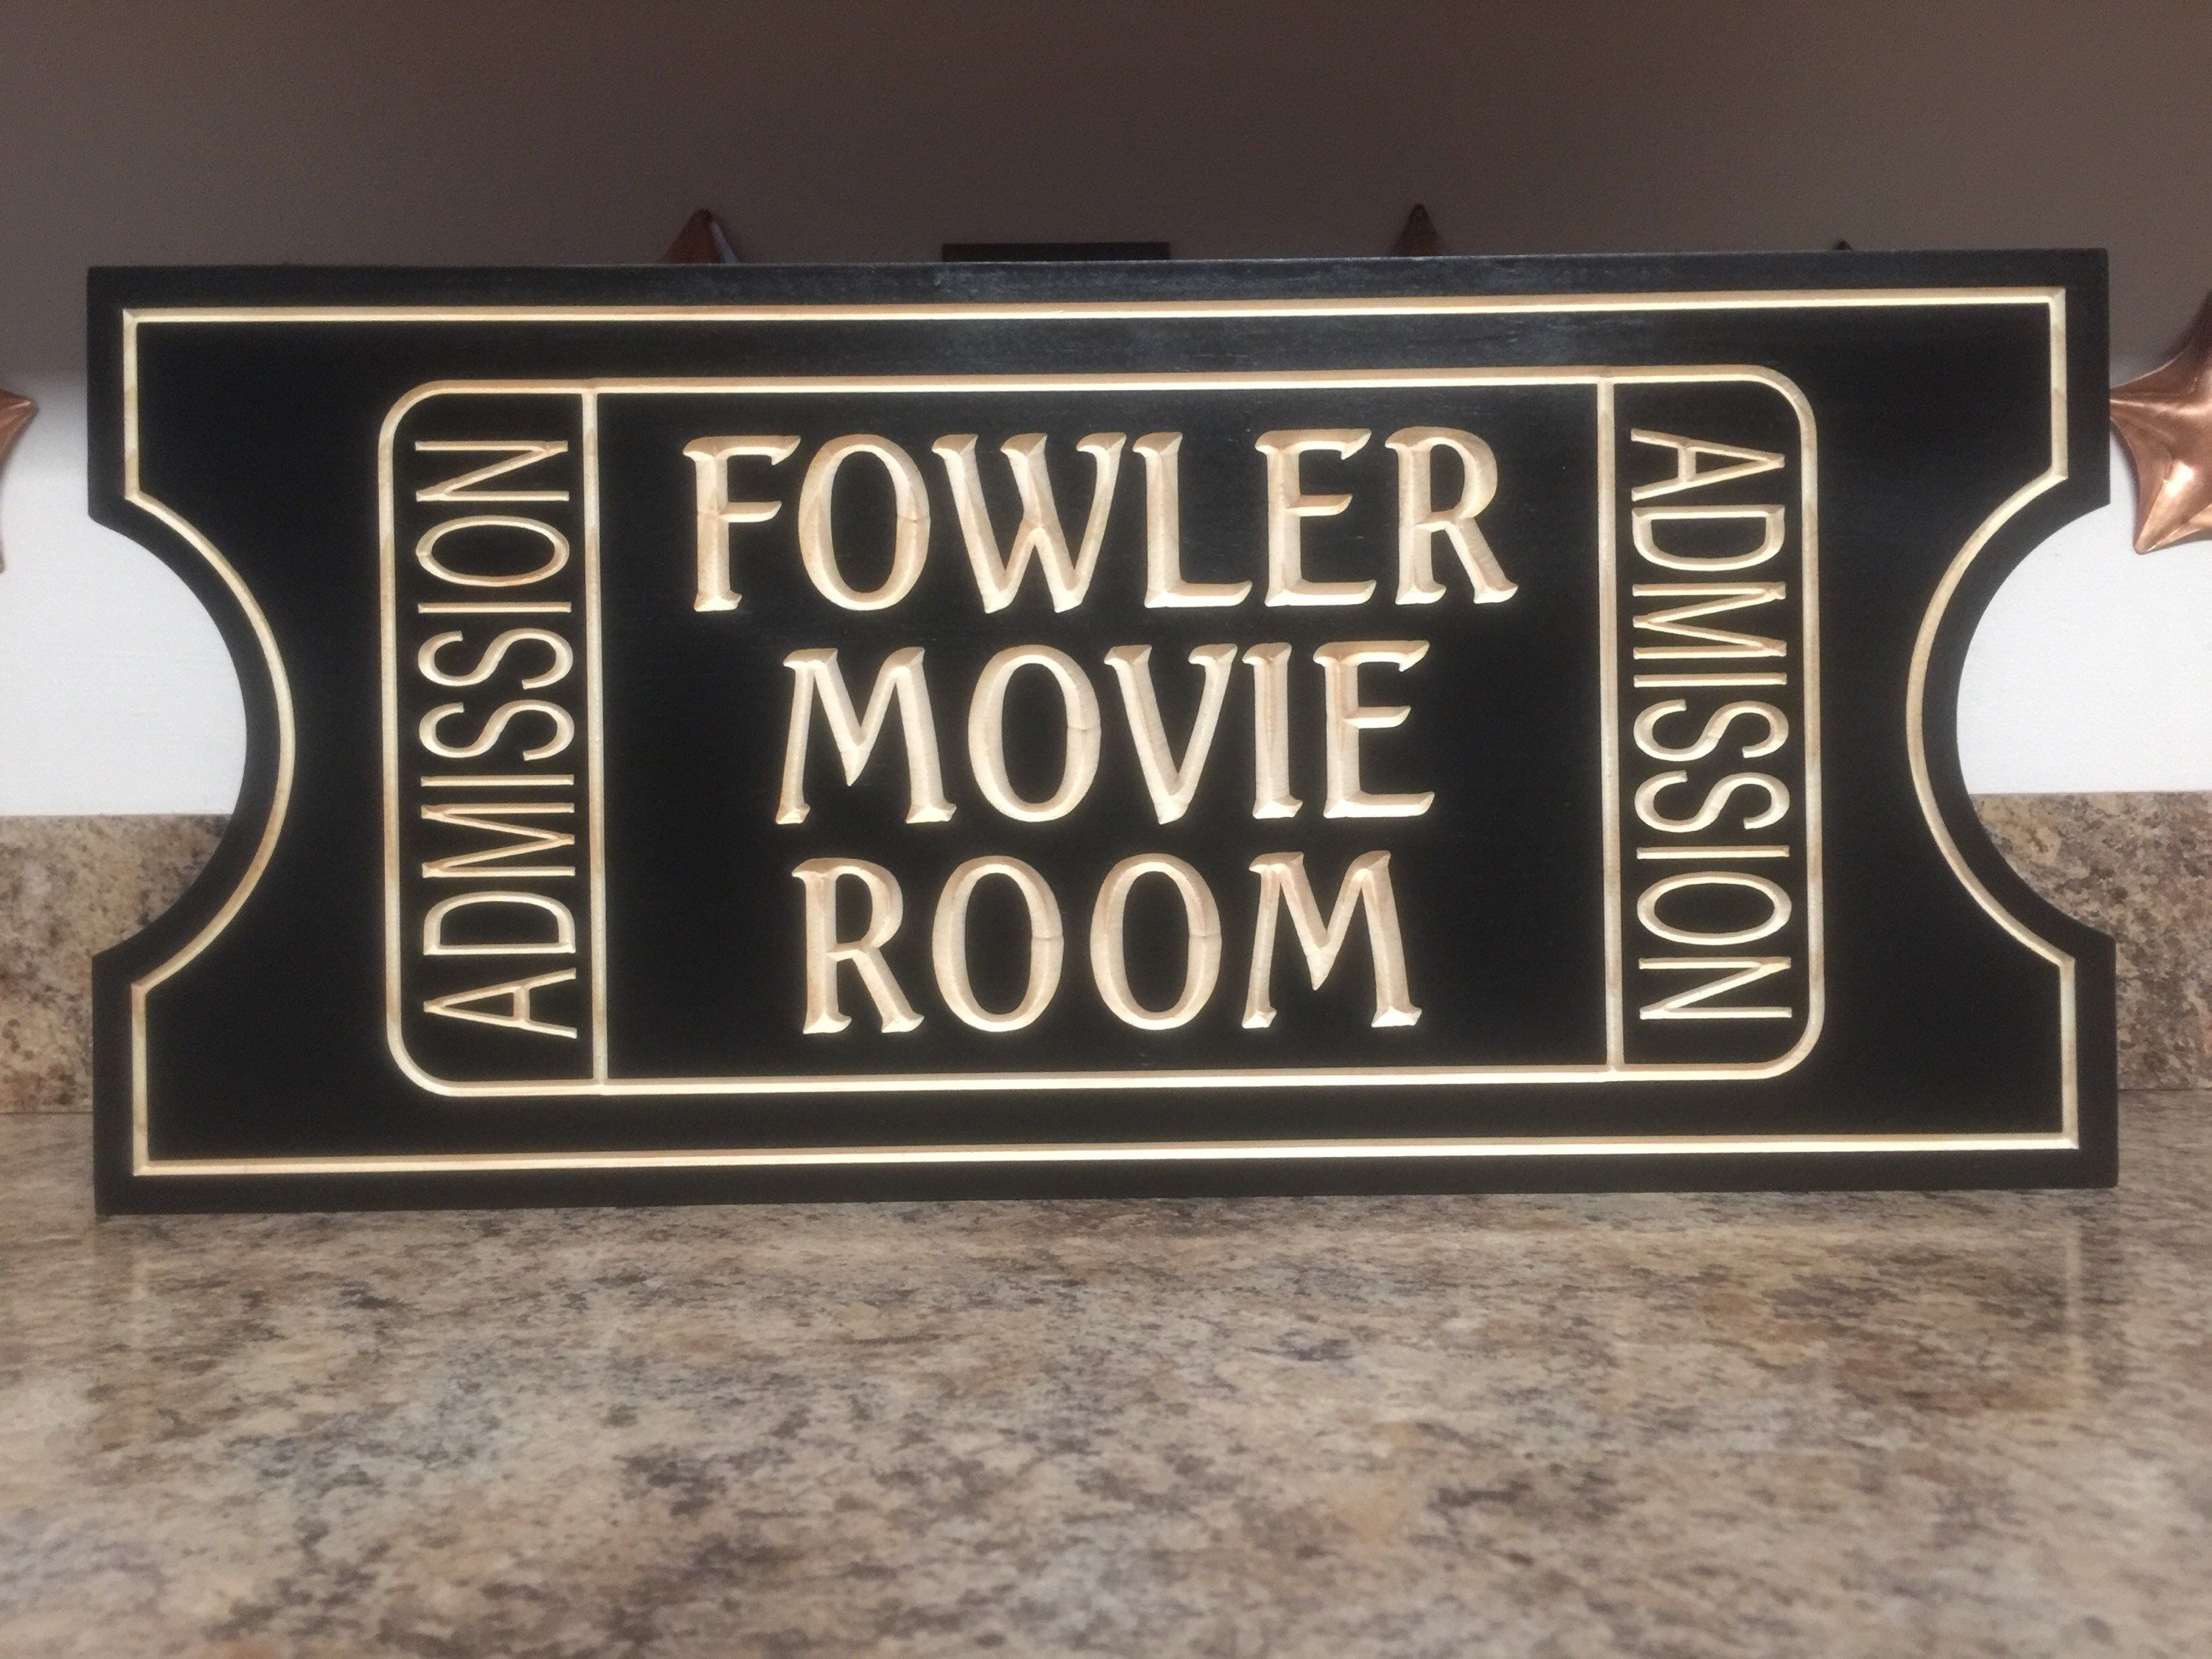 Movie poster movie room decor basement decor home sign home theater